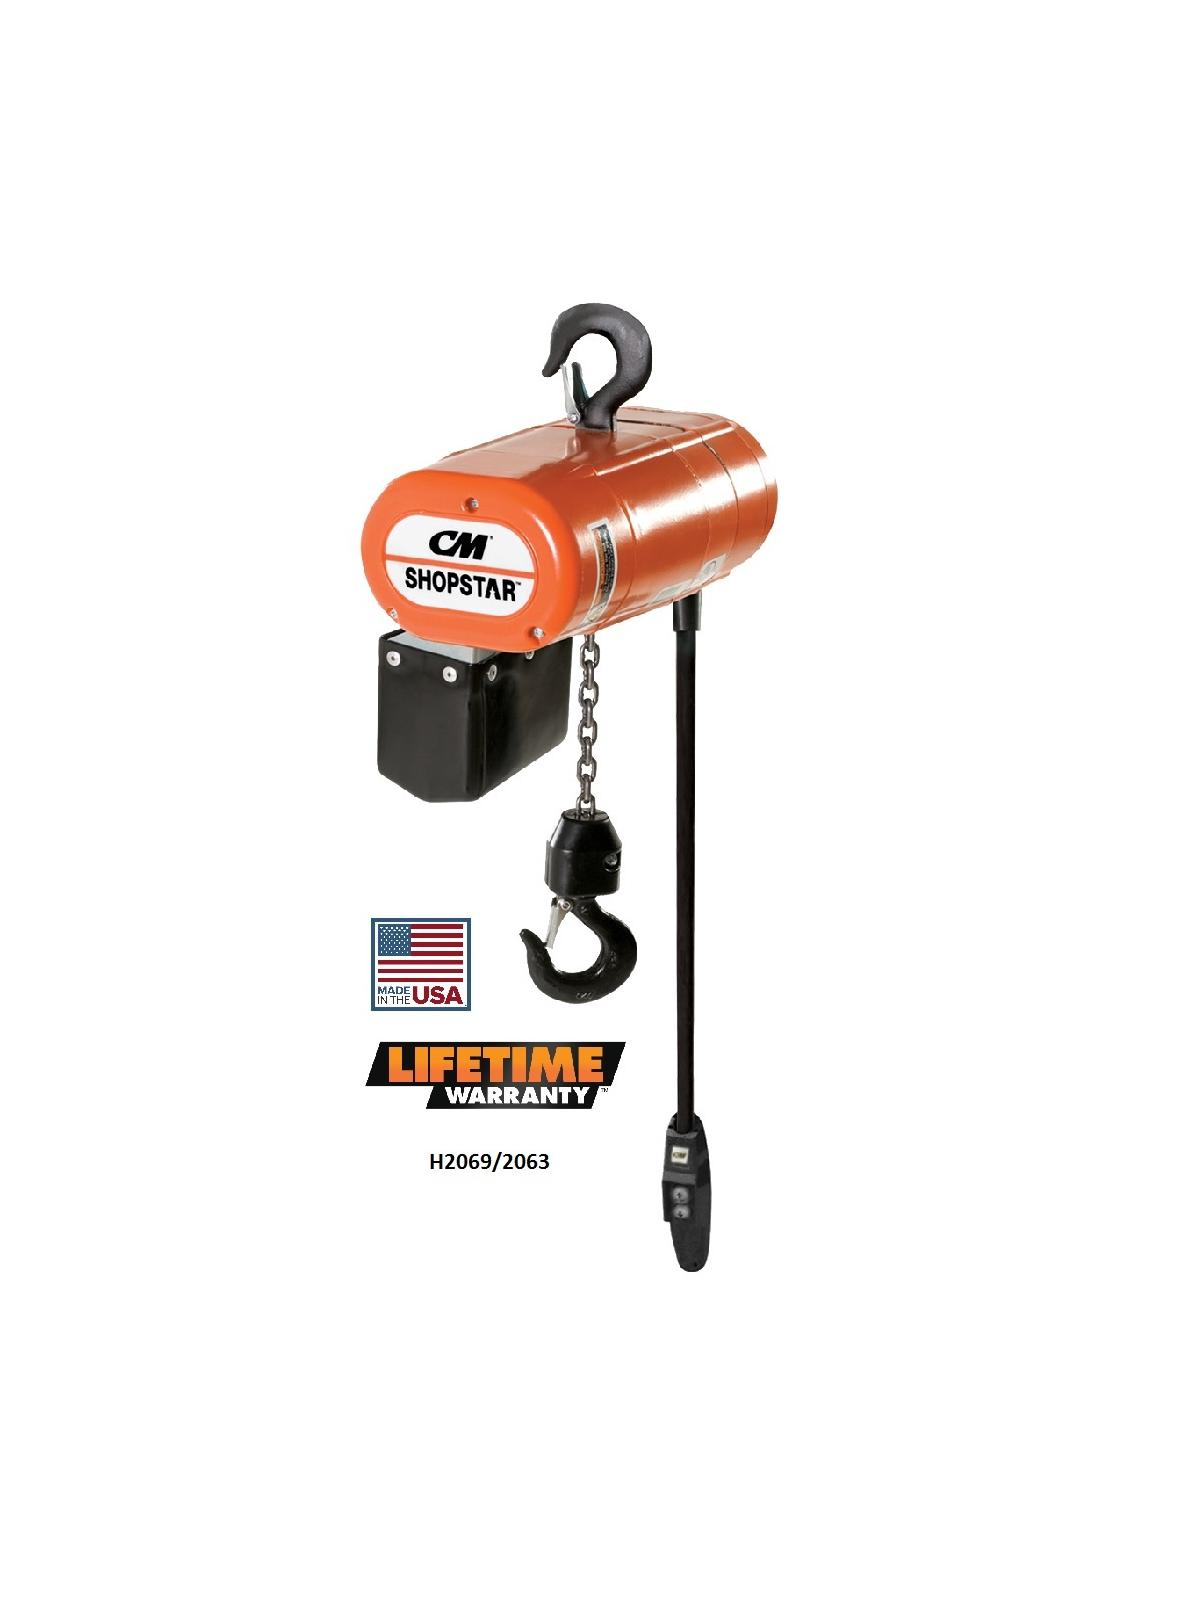 Cm Shopstar Electric Chain Hoist At Nationwide Industrial